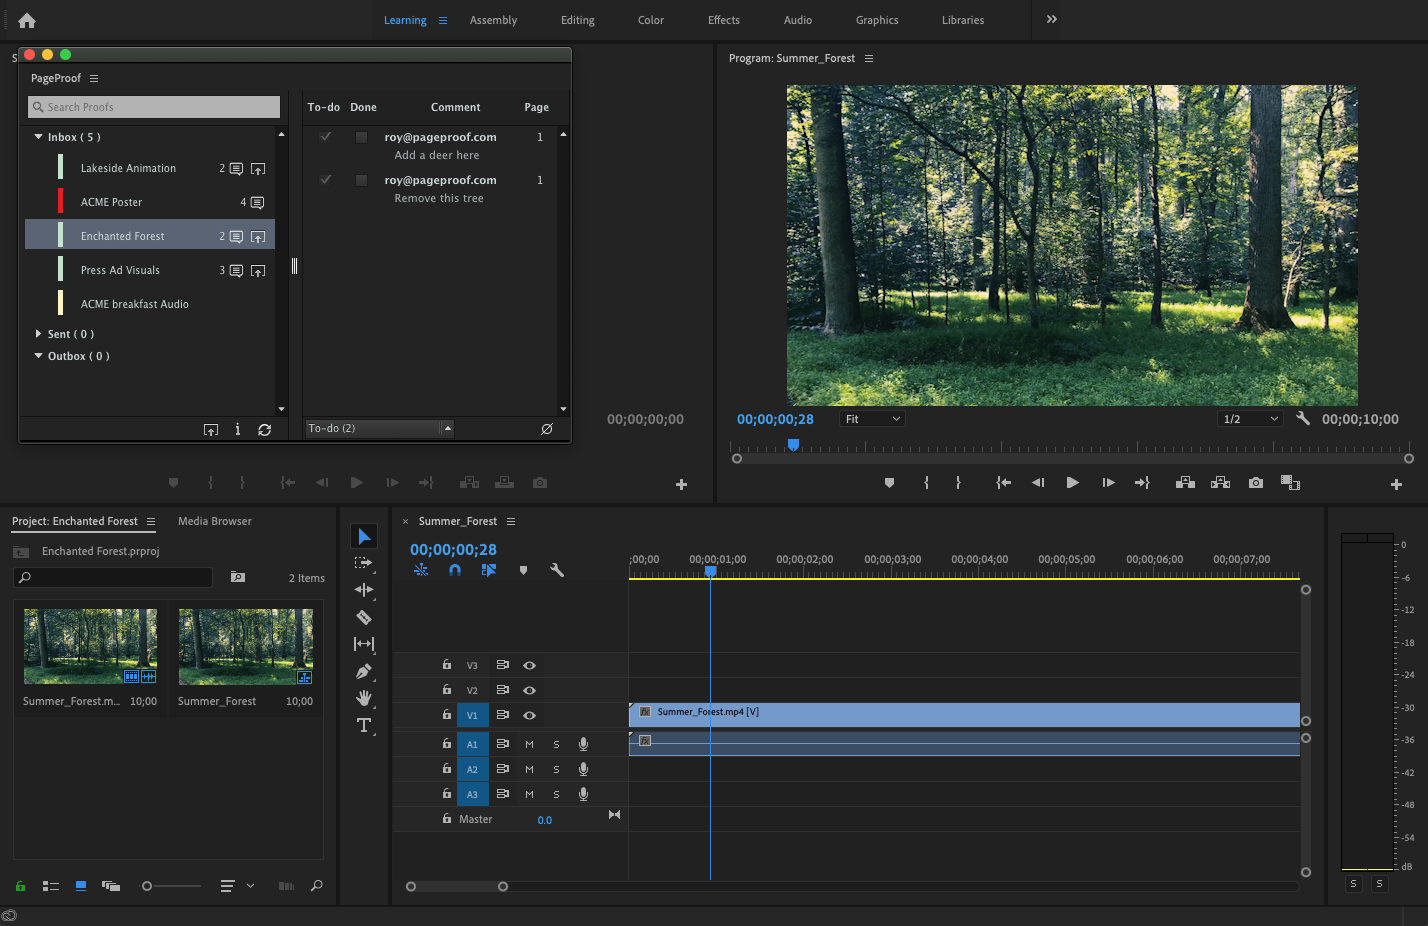 PageProof panel in Adobe Premiere Pro